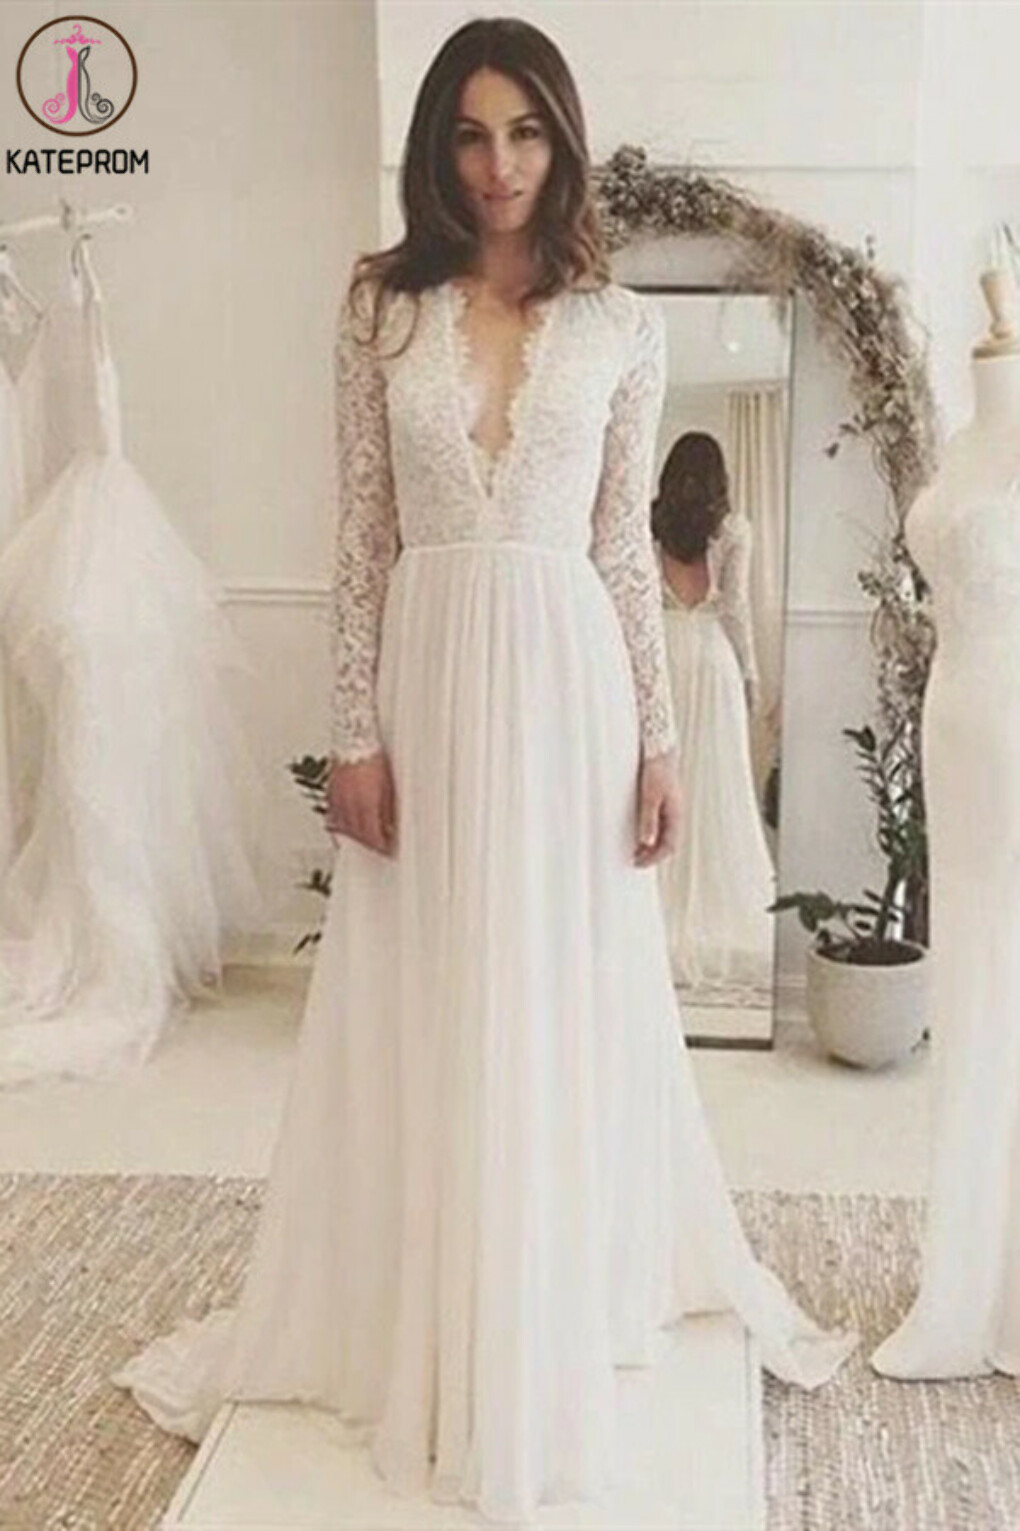 Kateprom Chic A-line Wedding Dresses Long Sleeve V neck Romantic Wedding Dress With Lace KPW0625